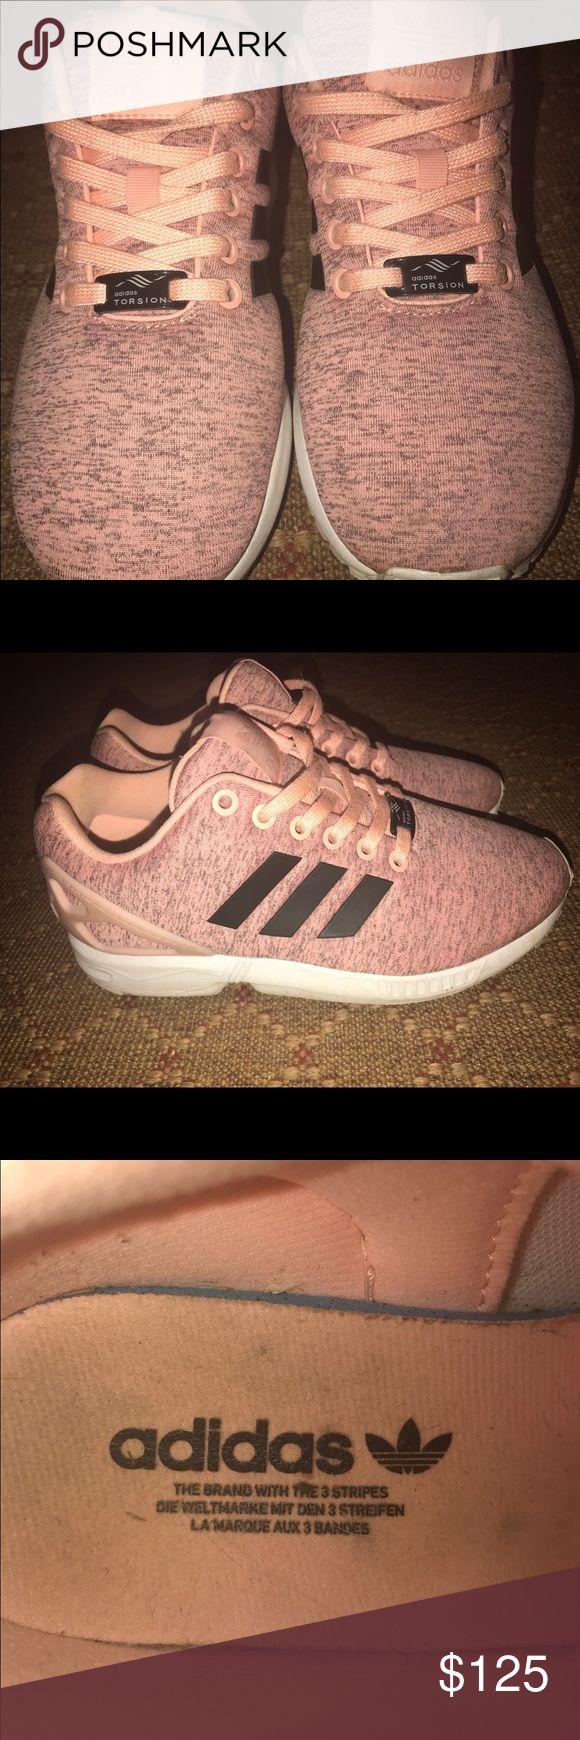 Adidas TORSION ZX FLUX Brand new! Wore maybe 3 times for not long at all! Paid around $150 for them! Says they are a 6 but I wear a 7.5 and they fit me perfectly! Make reasonable offers please! Adidas Shoes Athletic Shoes